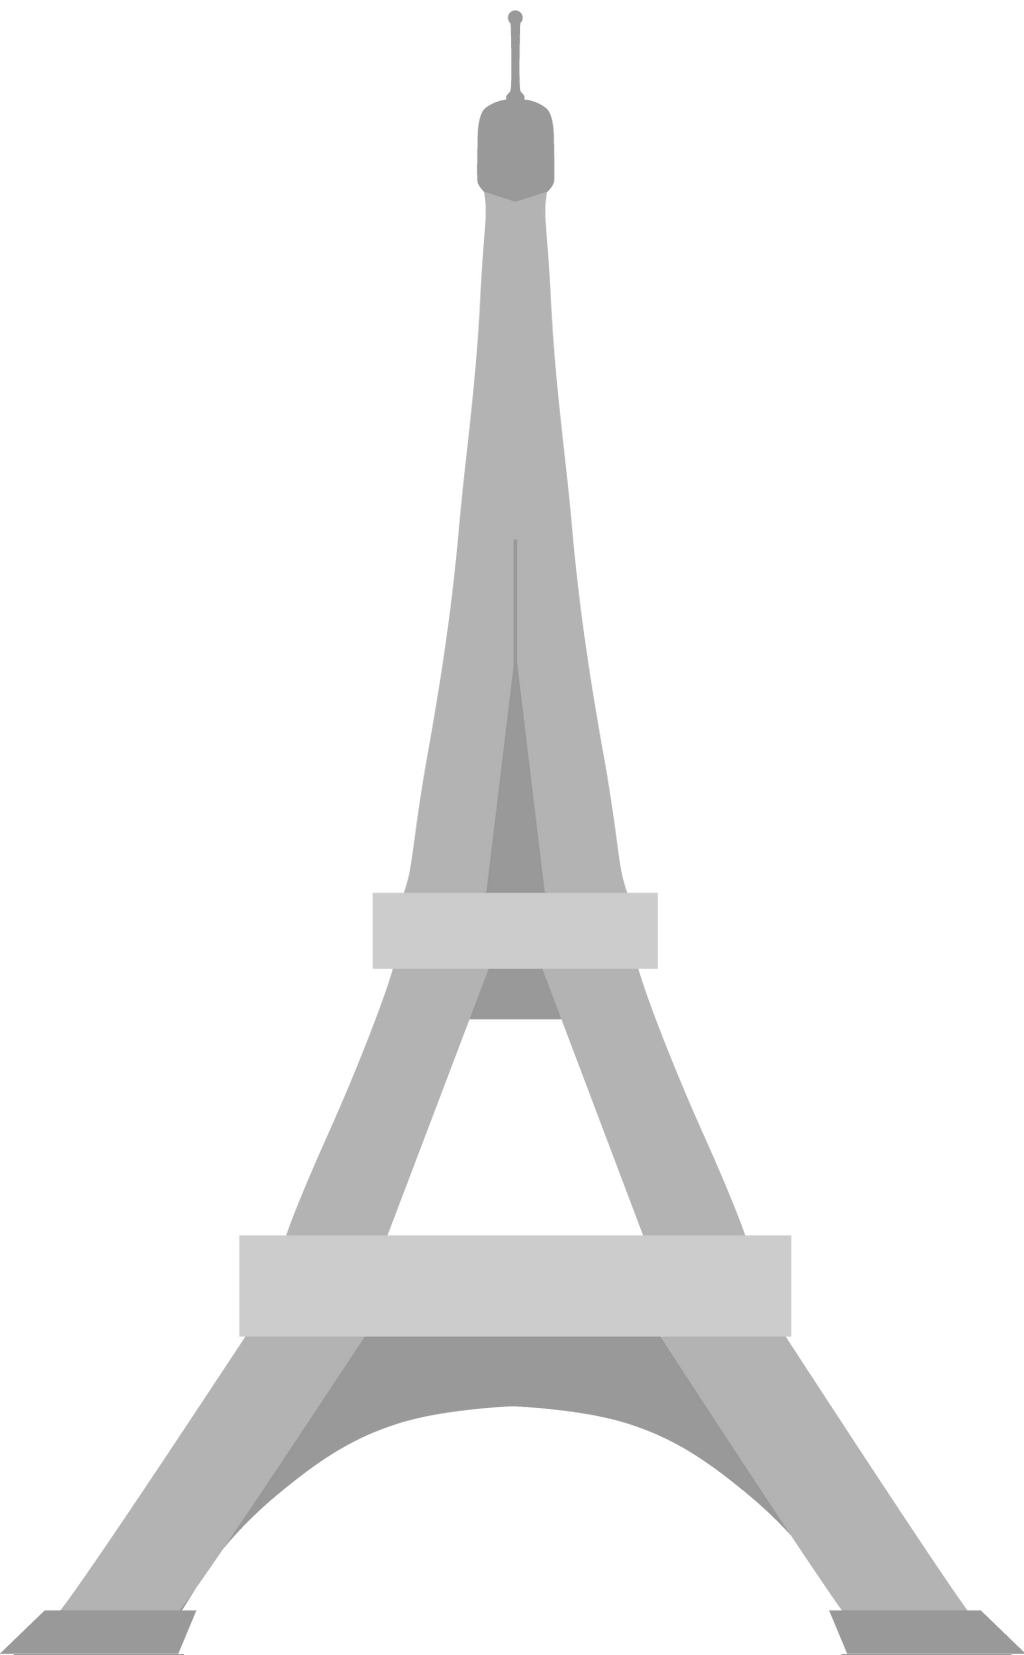 Eiffel Tower SVG icon by greenpencl on DeviantArt